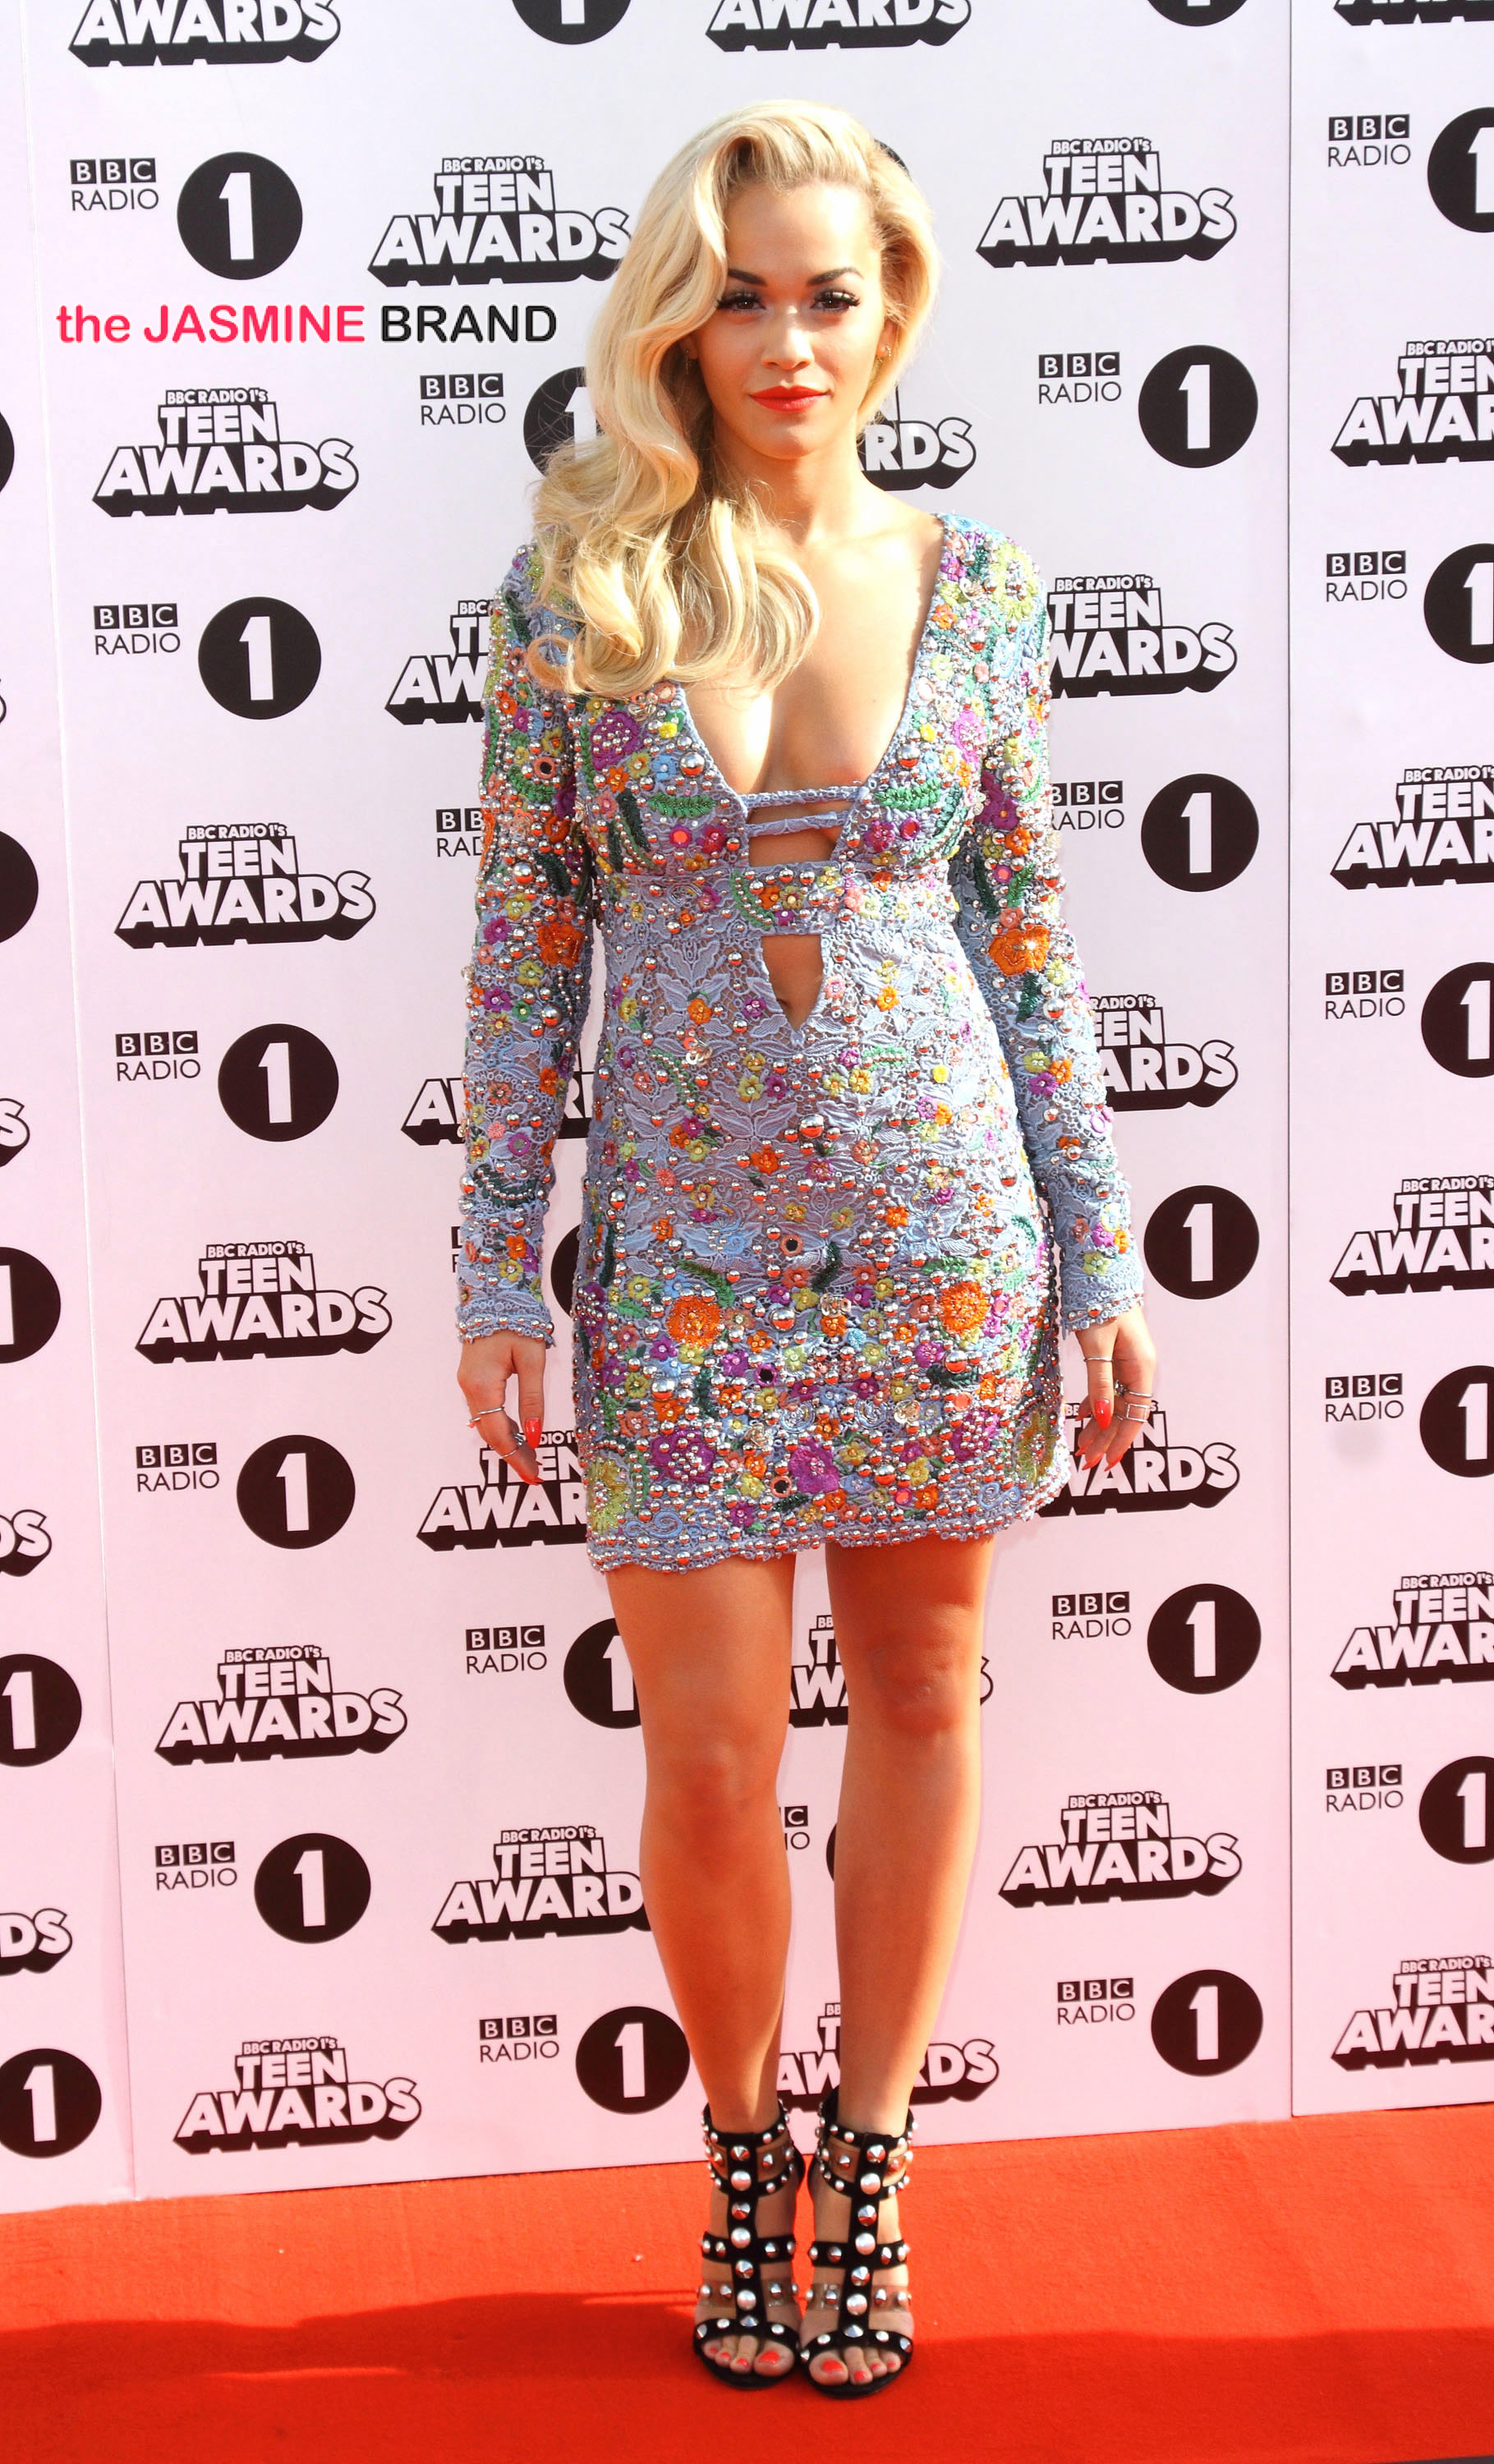 BBC Radio 1's Teen Awards 2014 - Arrivals